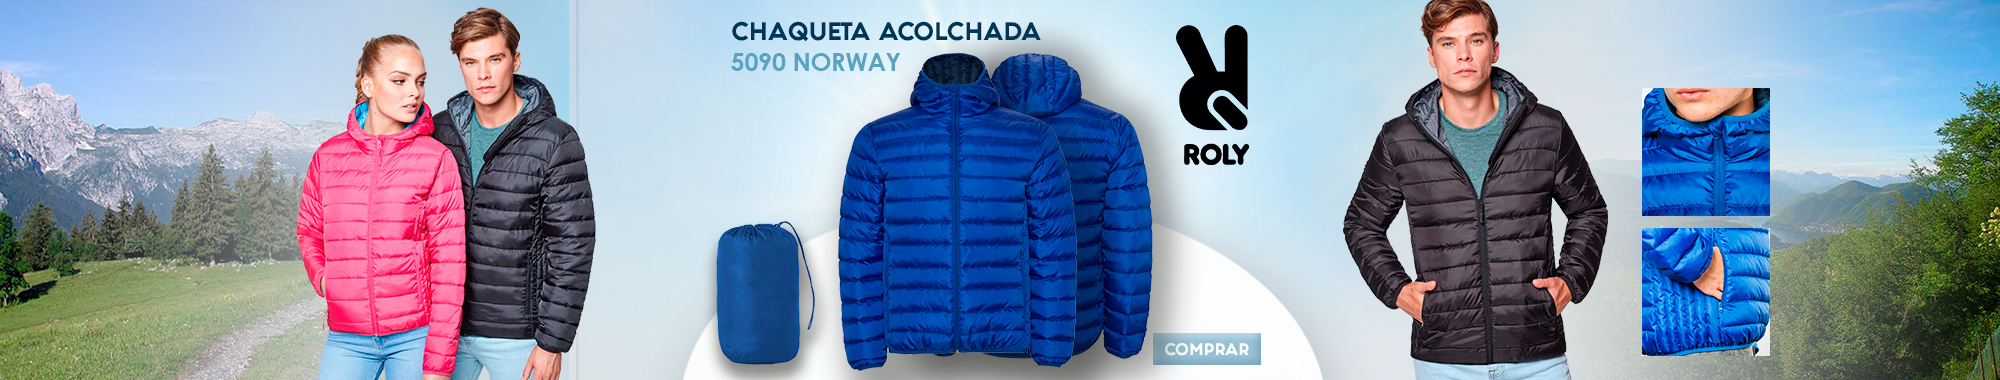 Chaqueta Roly 5090 Norway